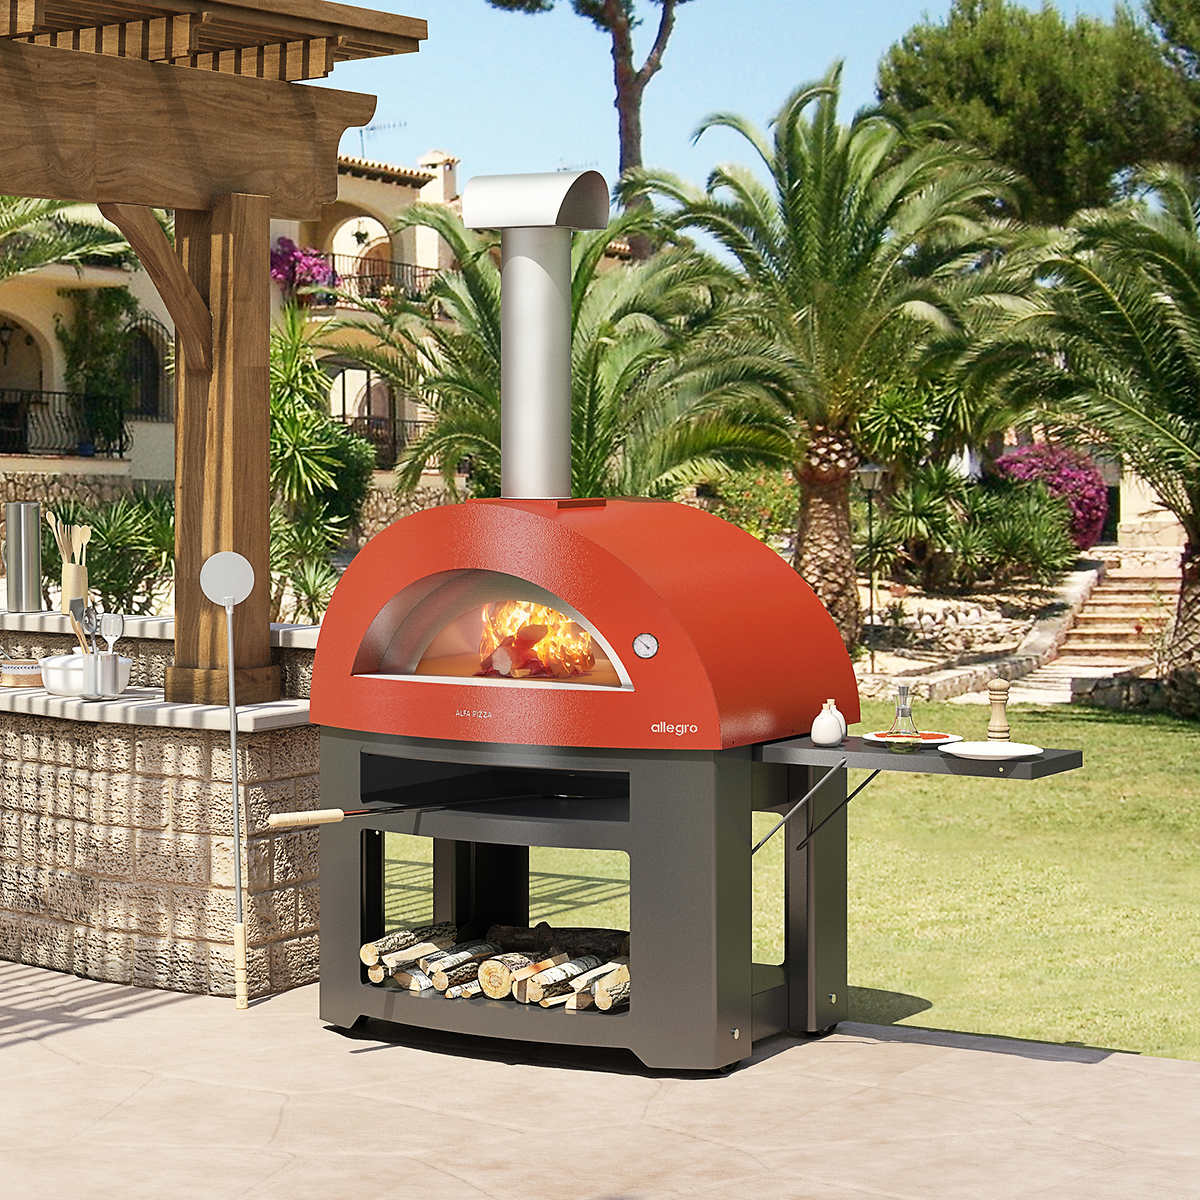 Italian Outdoor Kitchen Grills Accessories